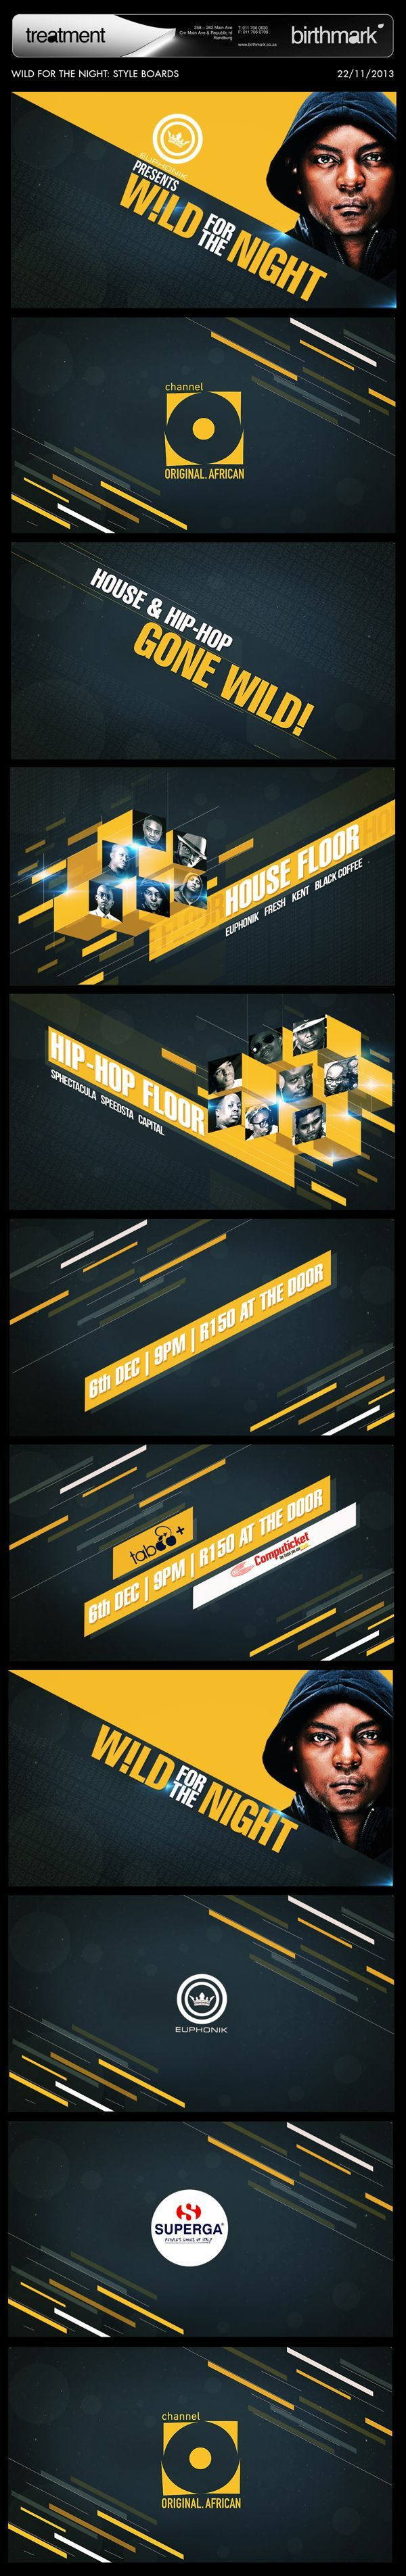 Styleframes and story boards for motion graphic design and branding WILD FOR THE NIGHT by Jossi Afargan, via Behance